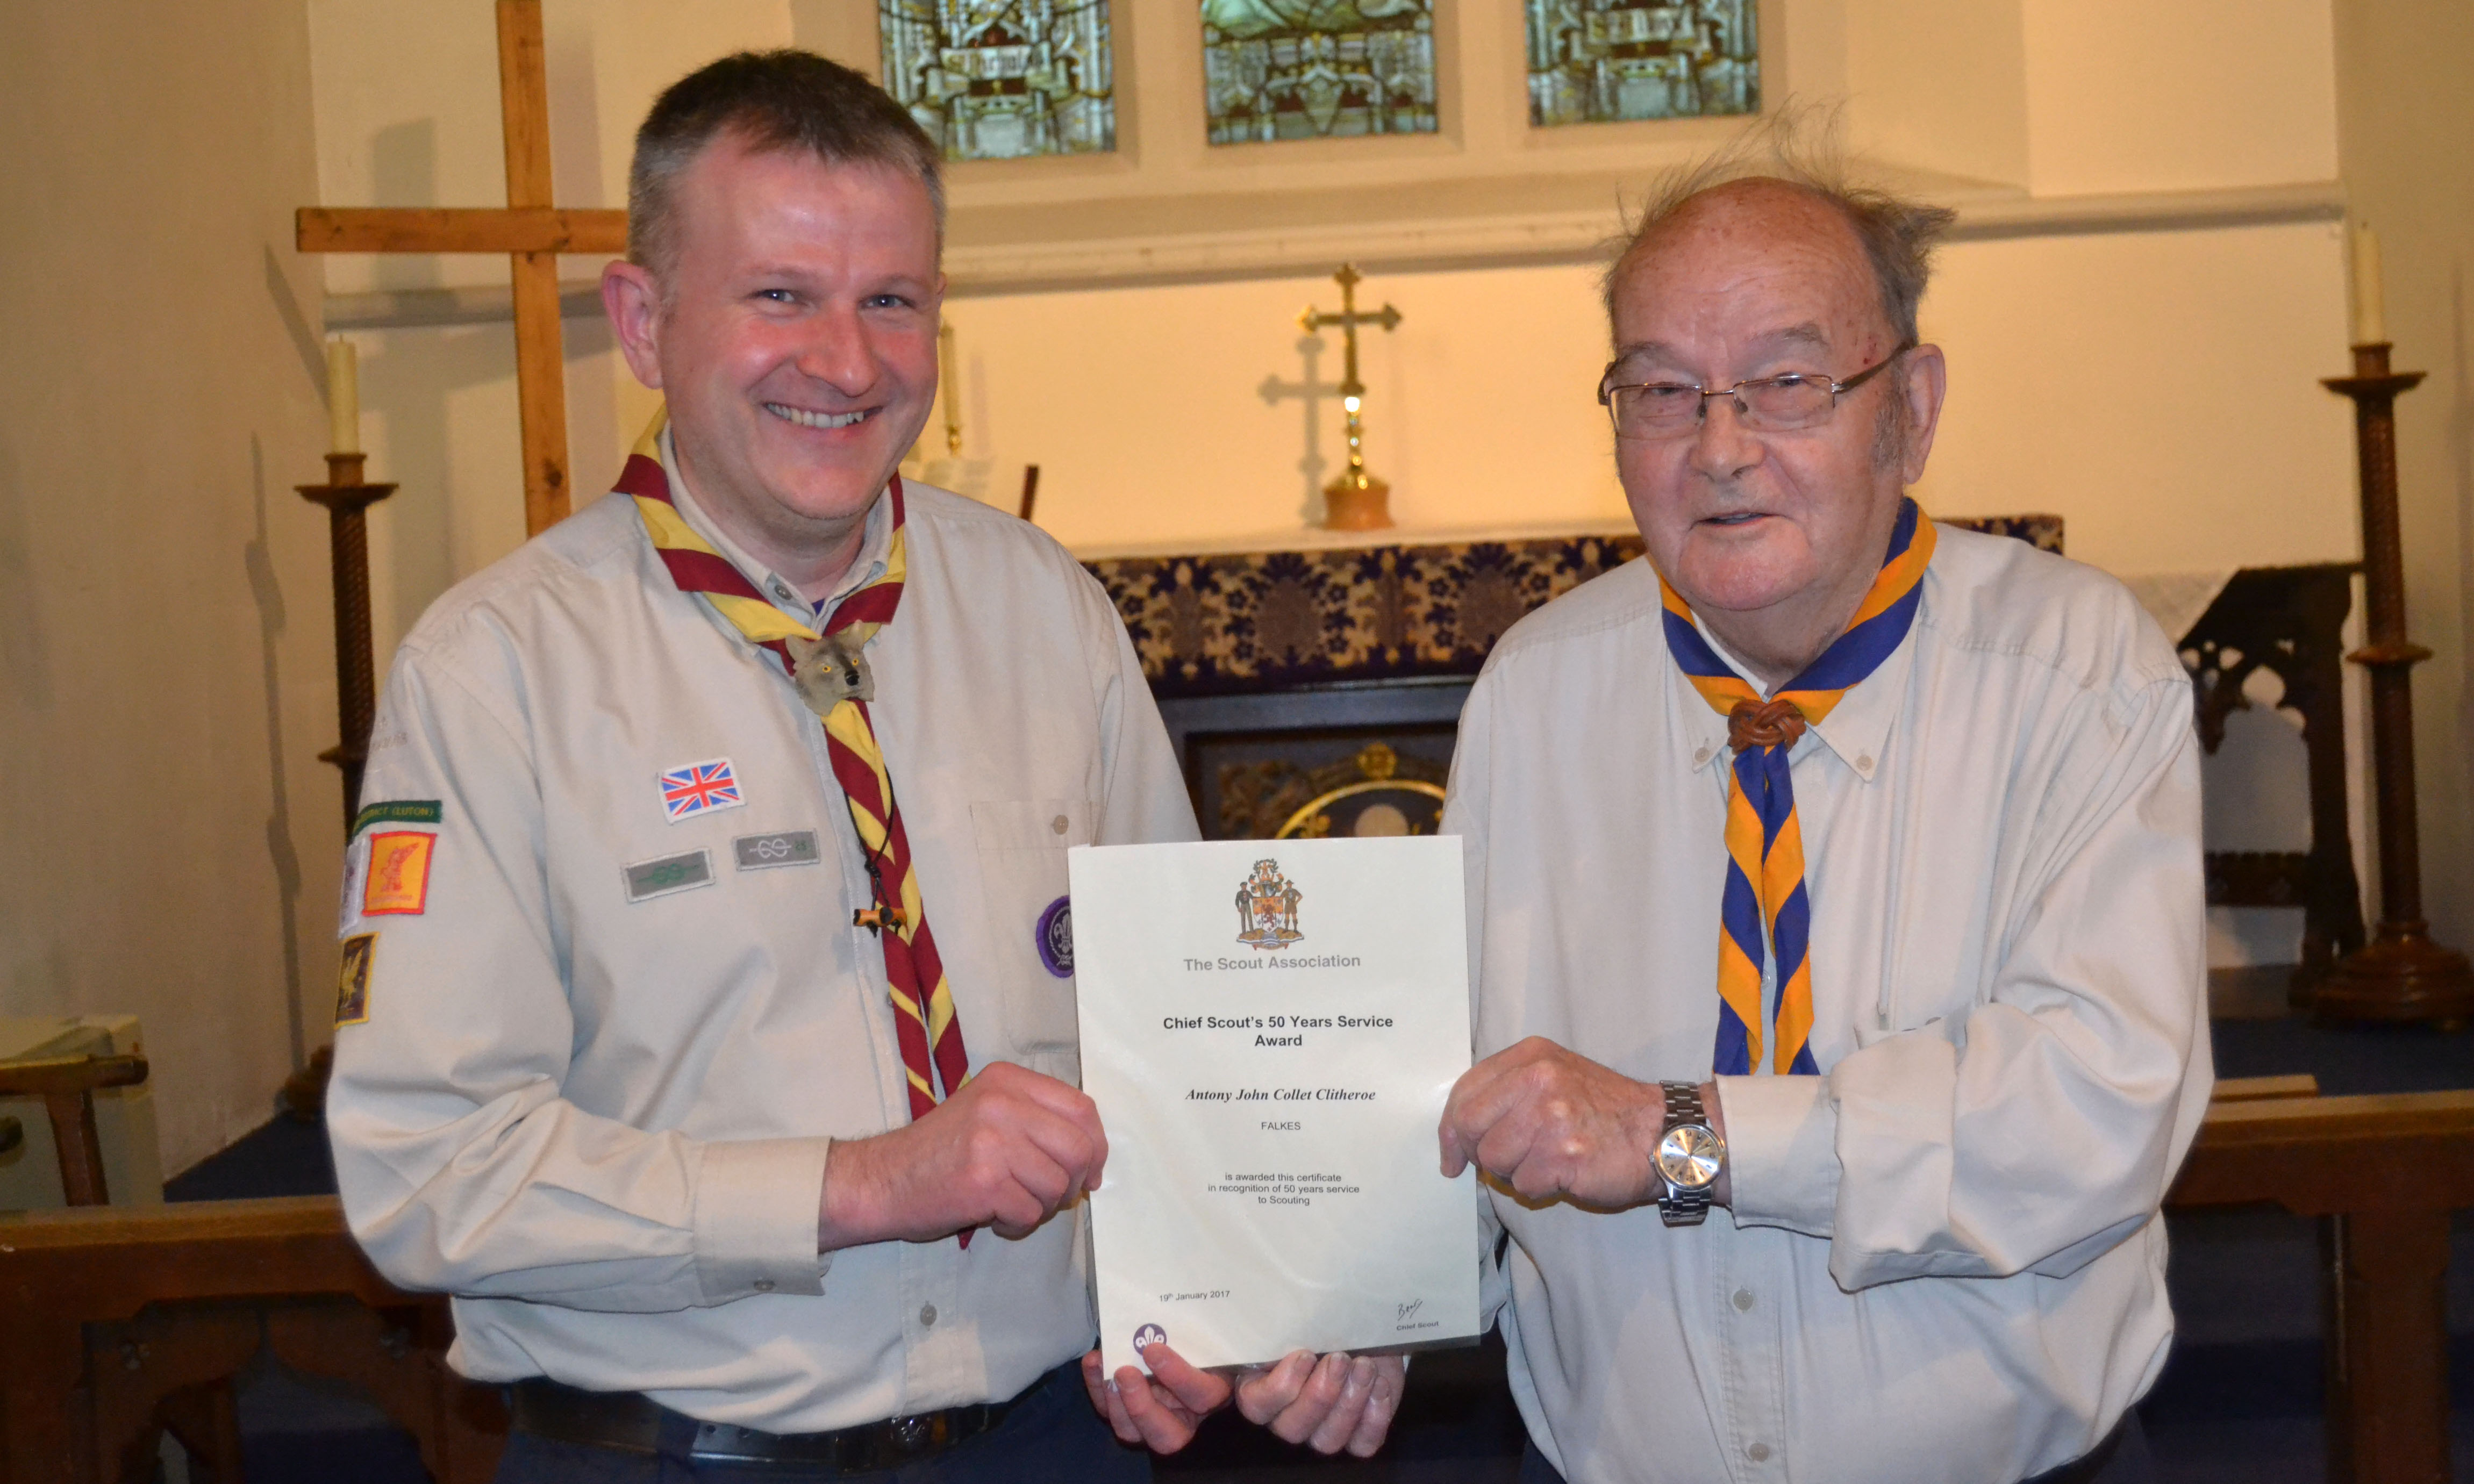 310 years of voluntary service to Luton Scouts rewarded